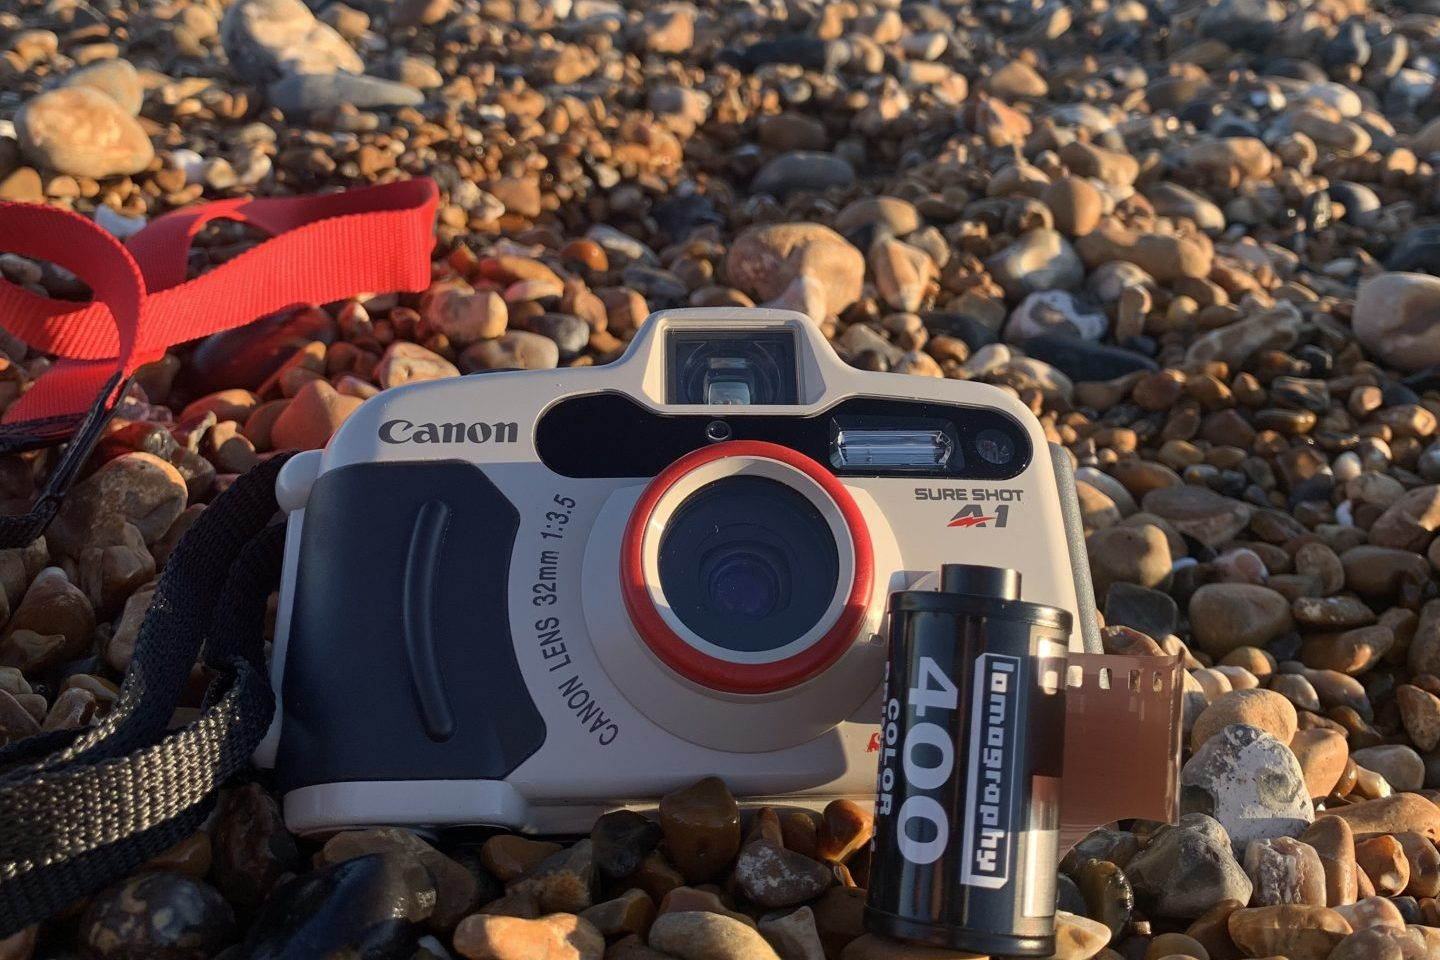 Canon Sureshot A1, ready to go for a swim